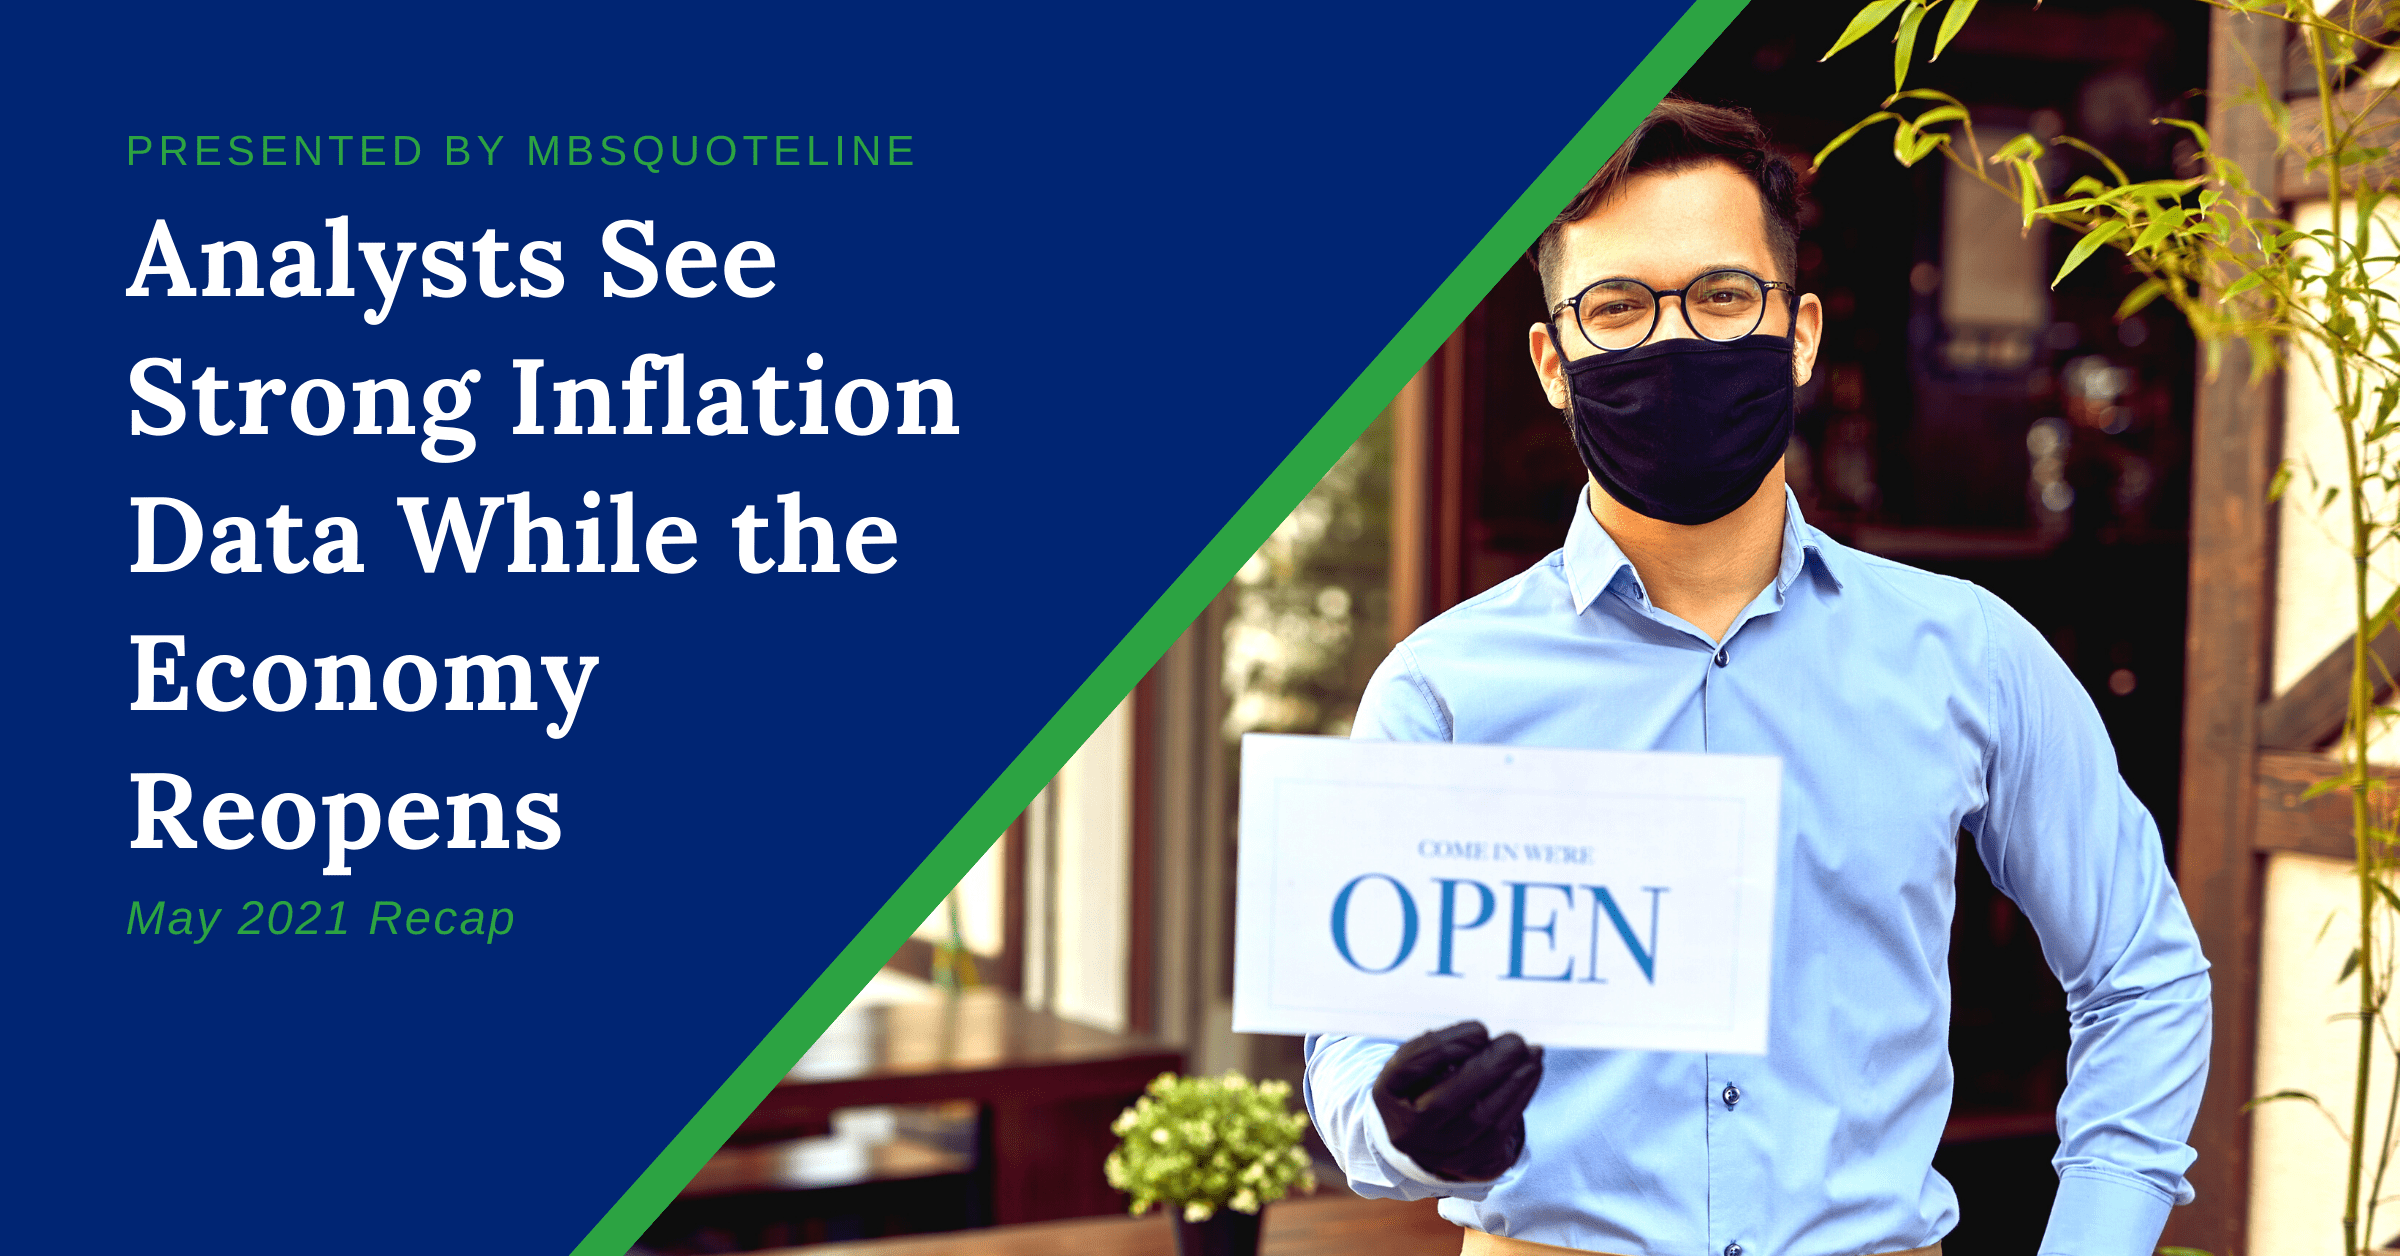 analysts see strong inflation data while economy reopens may 2021 recap mbsquoteline